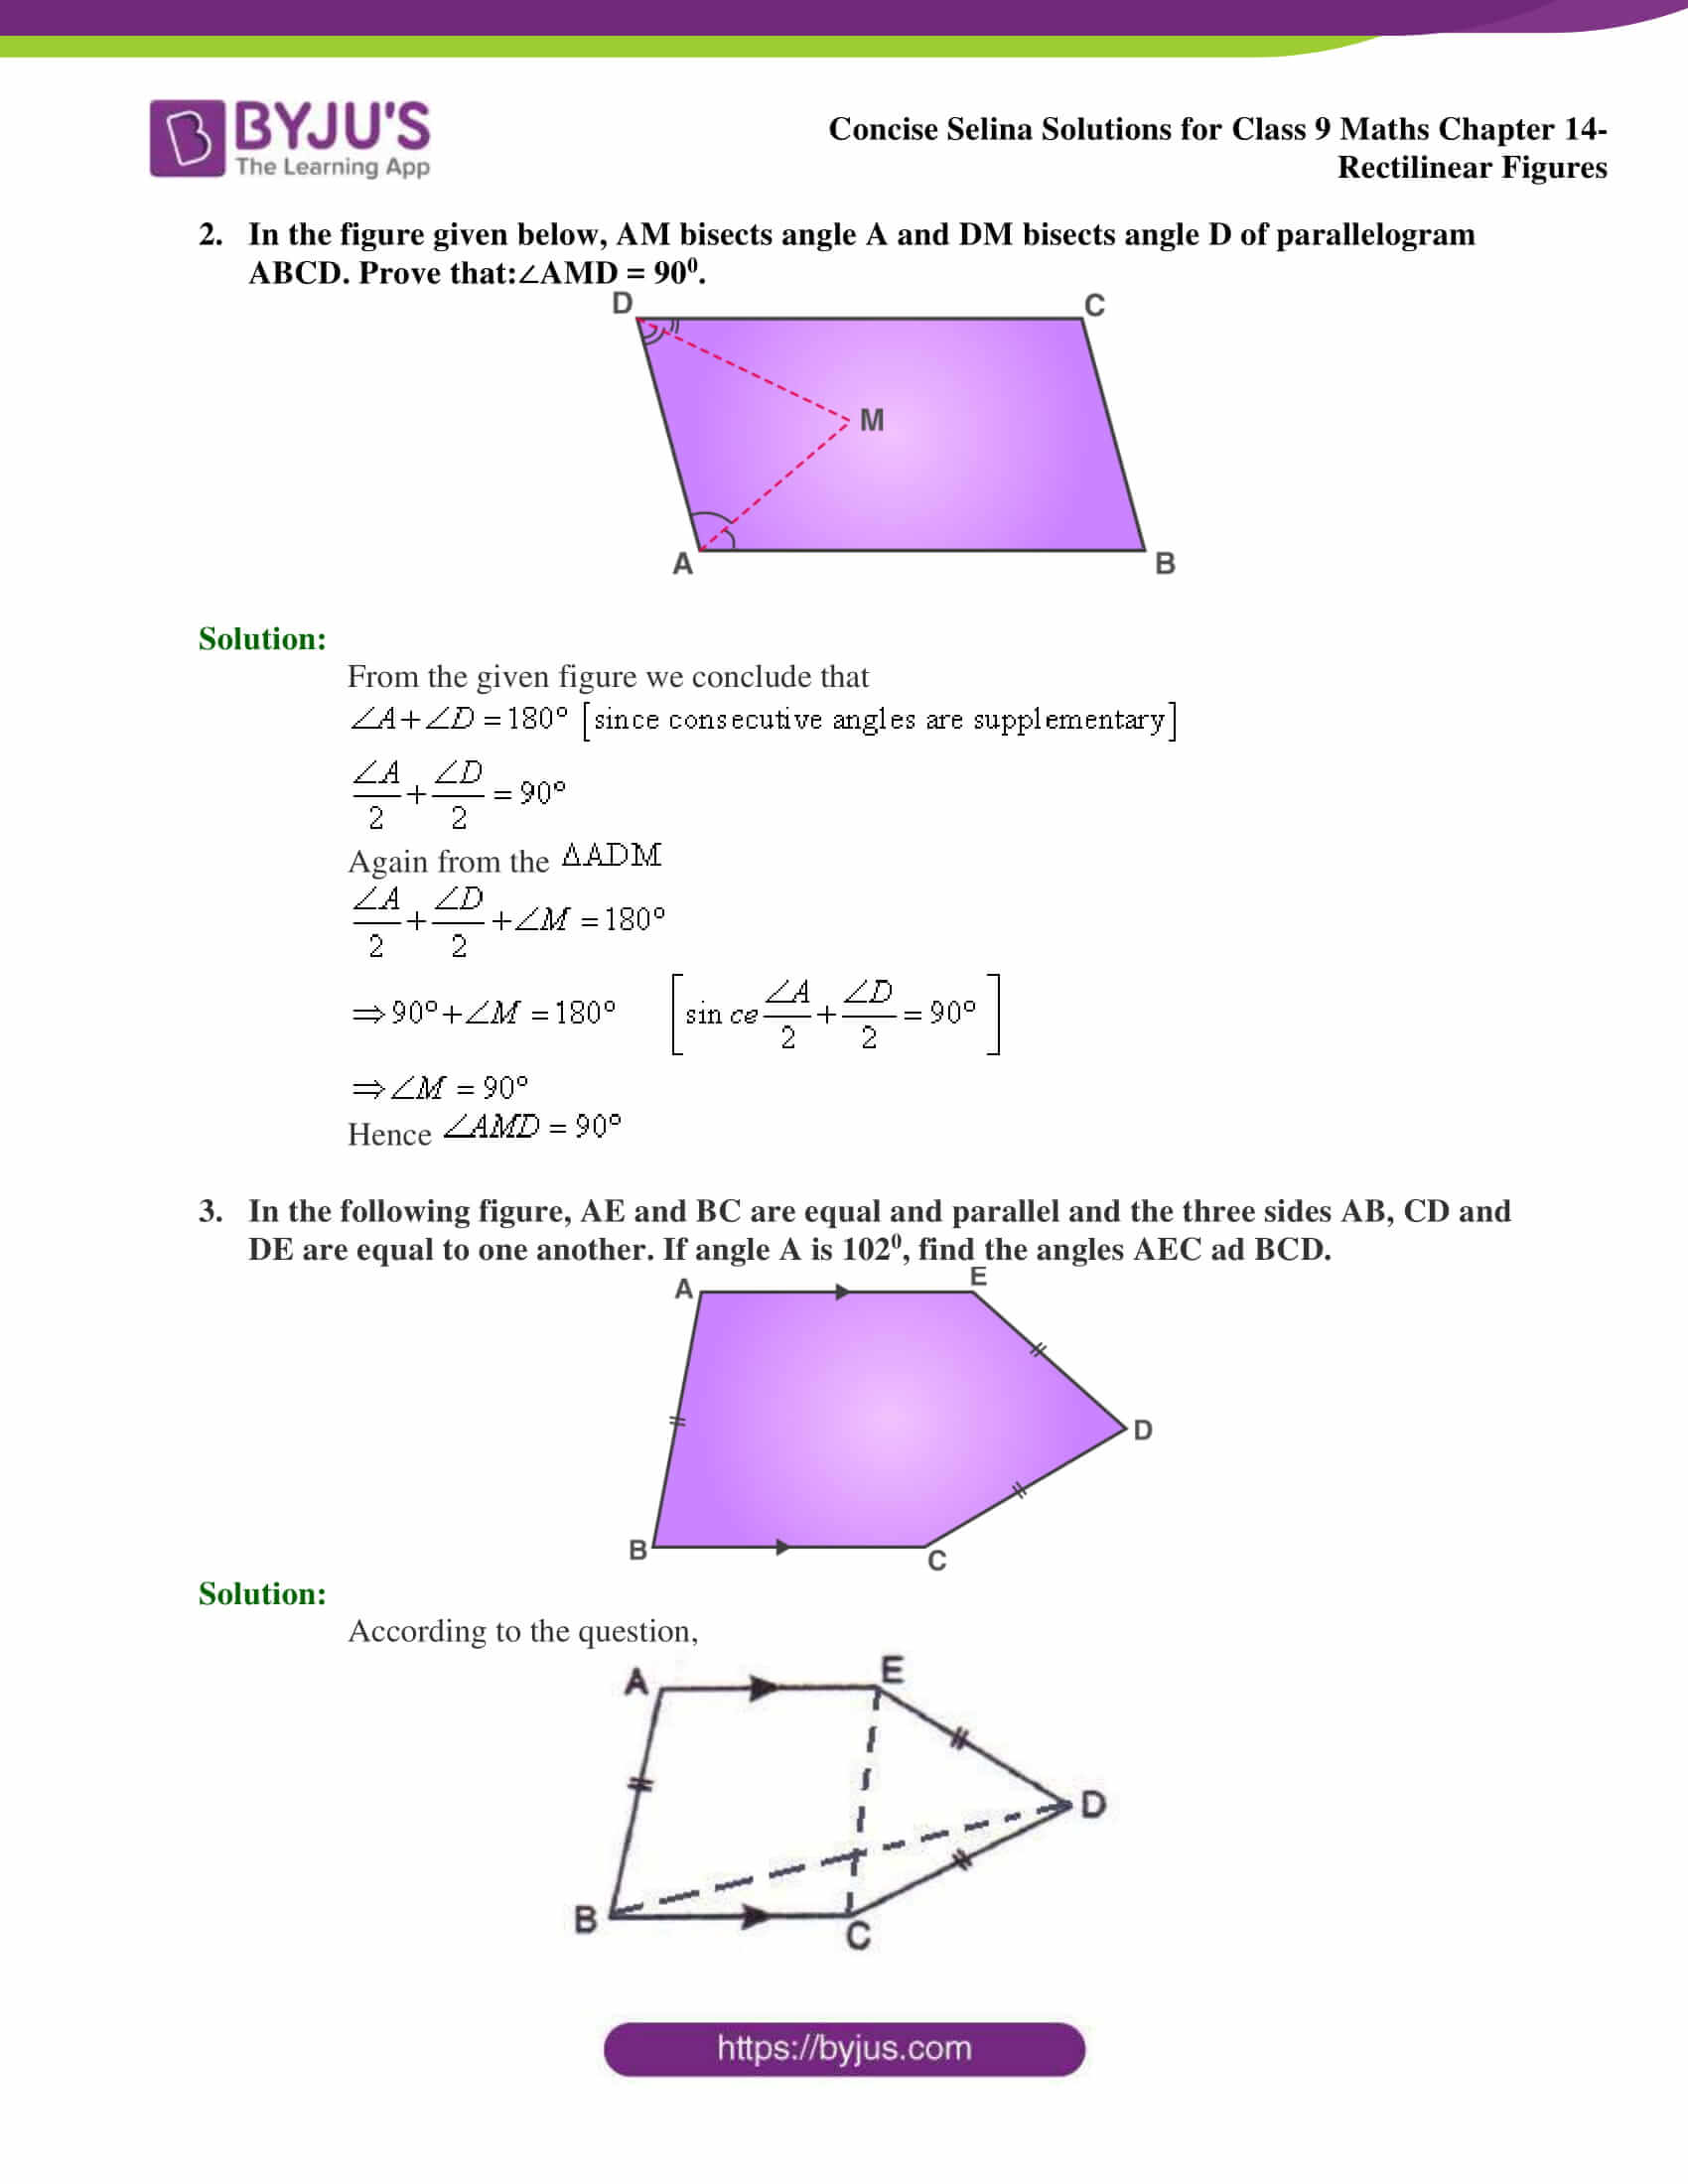 selina Solutions for Class 9 Maths Chapter 14 part 08